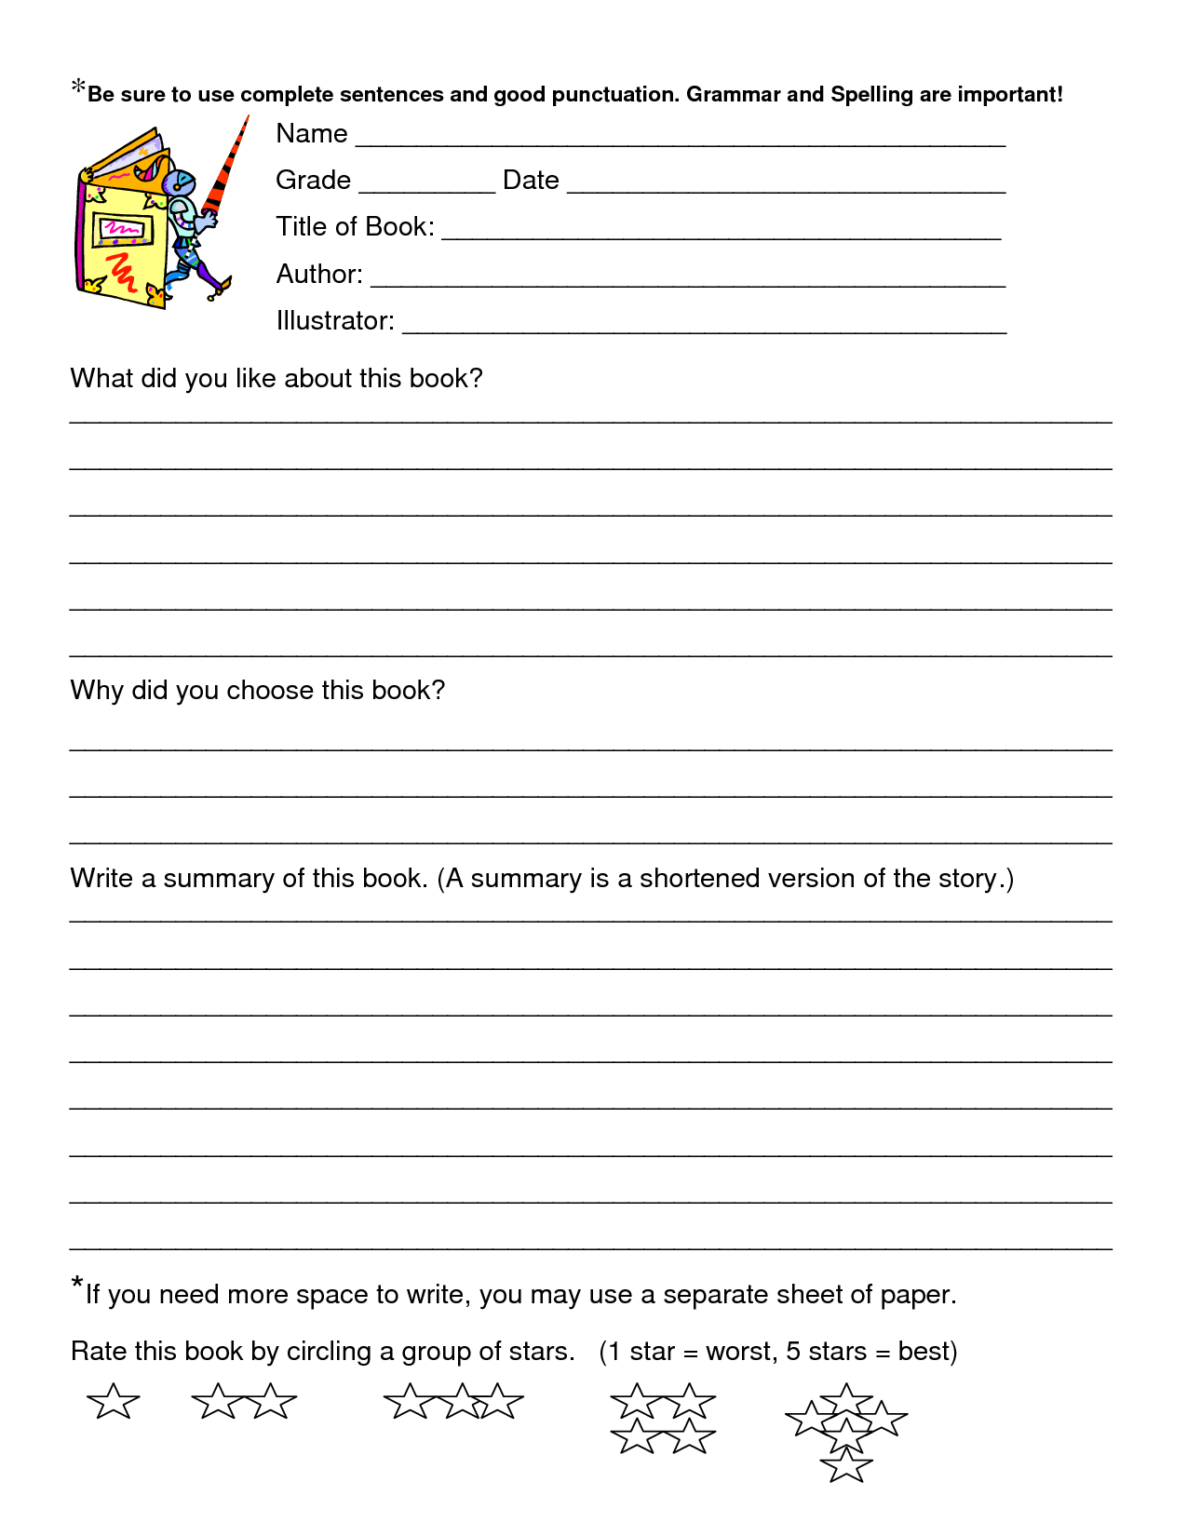 Book Review Worksheet Grade 5 | Printable Worksheets And with regard to 6Th Grade Book Report Template